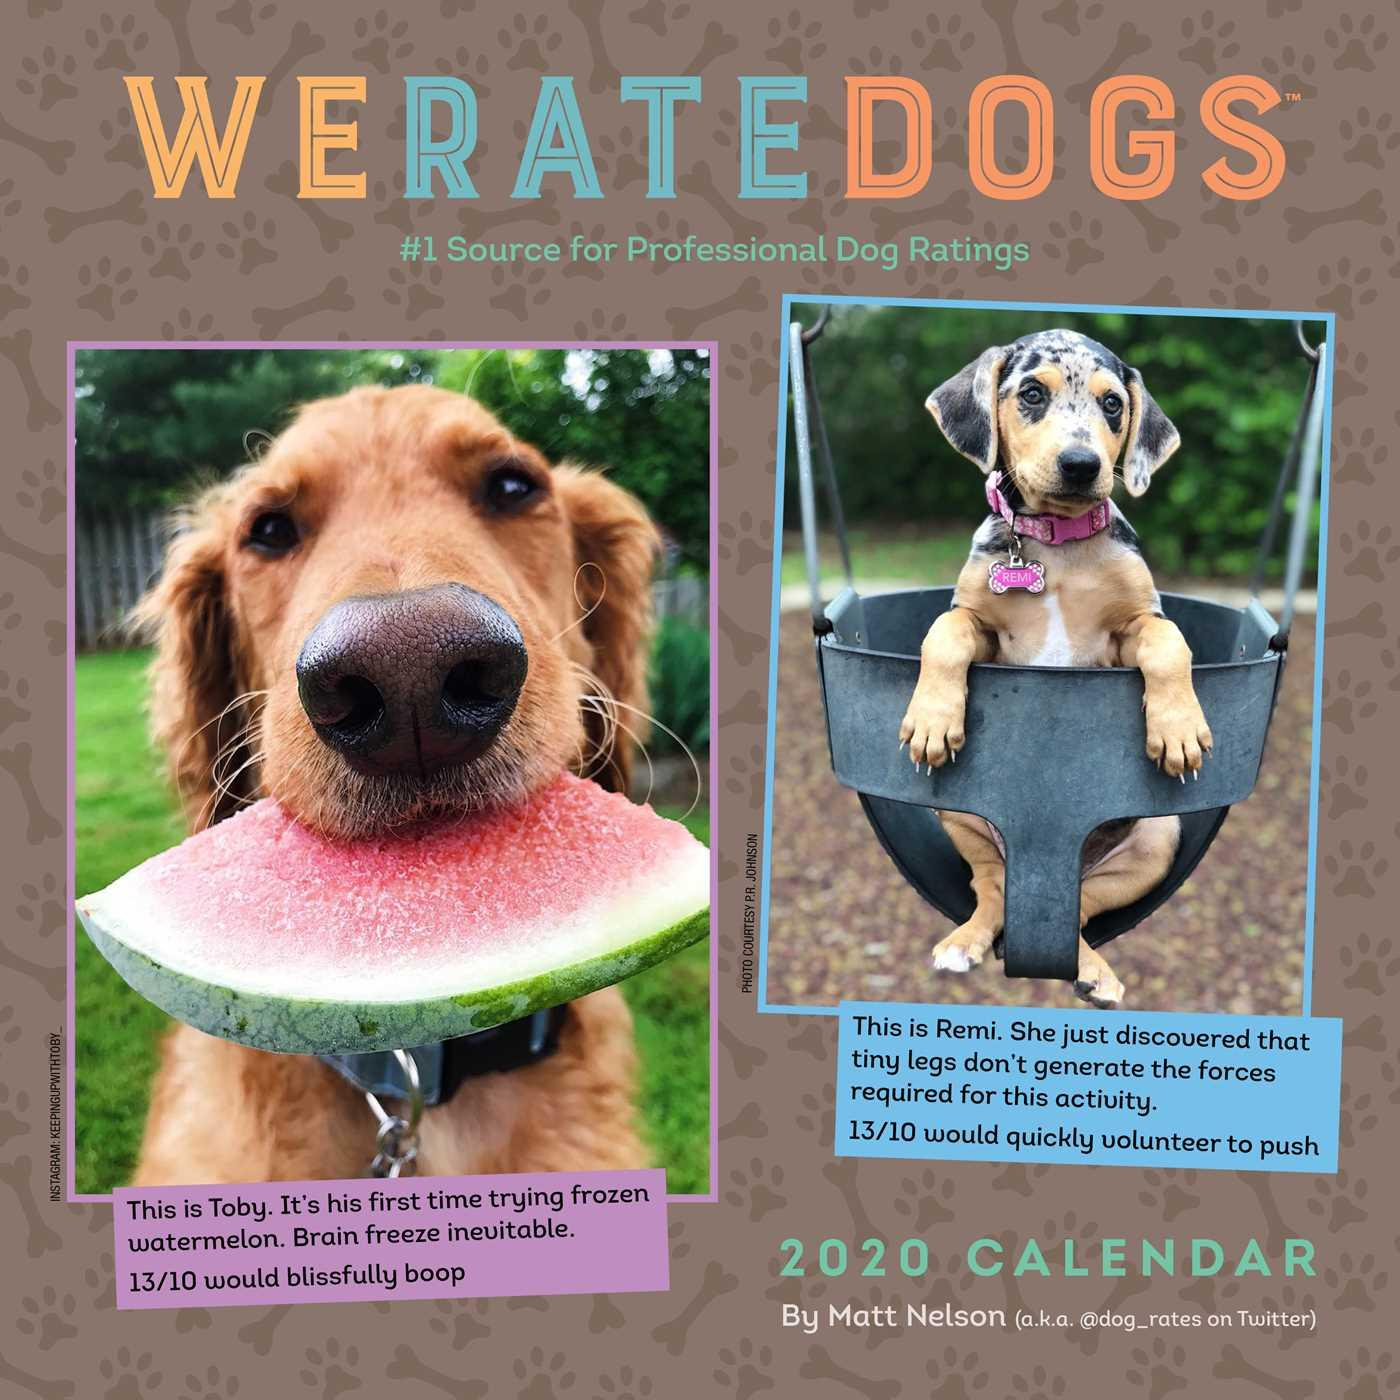 WE RATE DOGS 2021 WALL CALENDAR